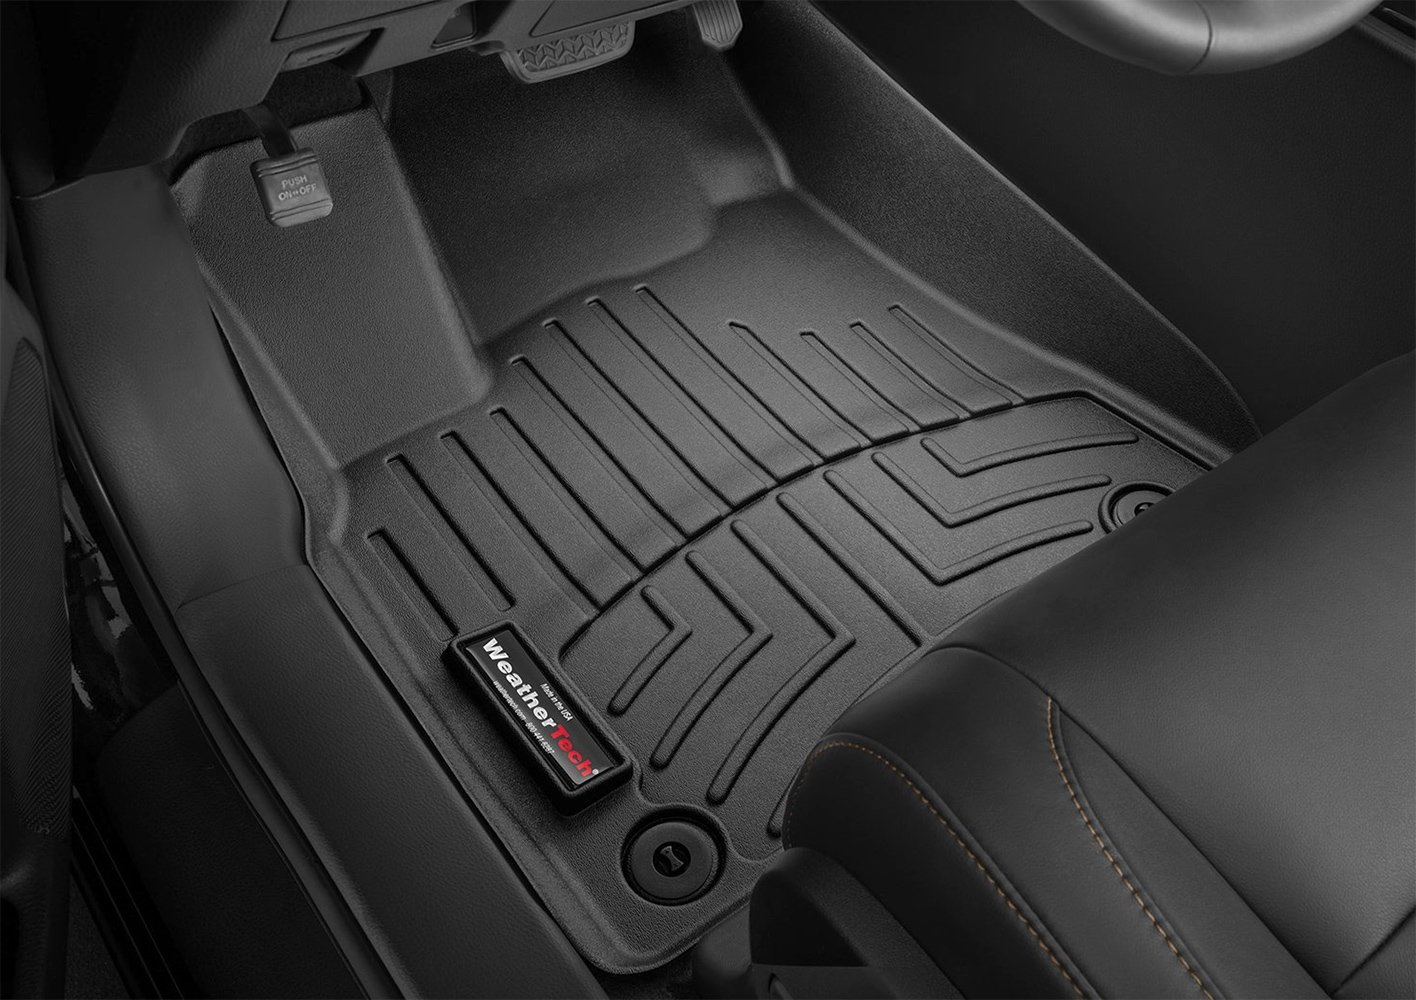 automotive mats altima for floorliner tan fit mat com dp floor nissan weathertech amazon front custom